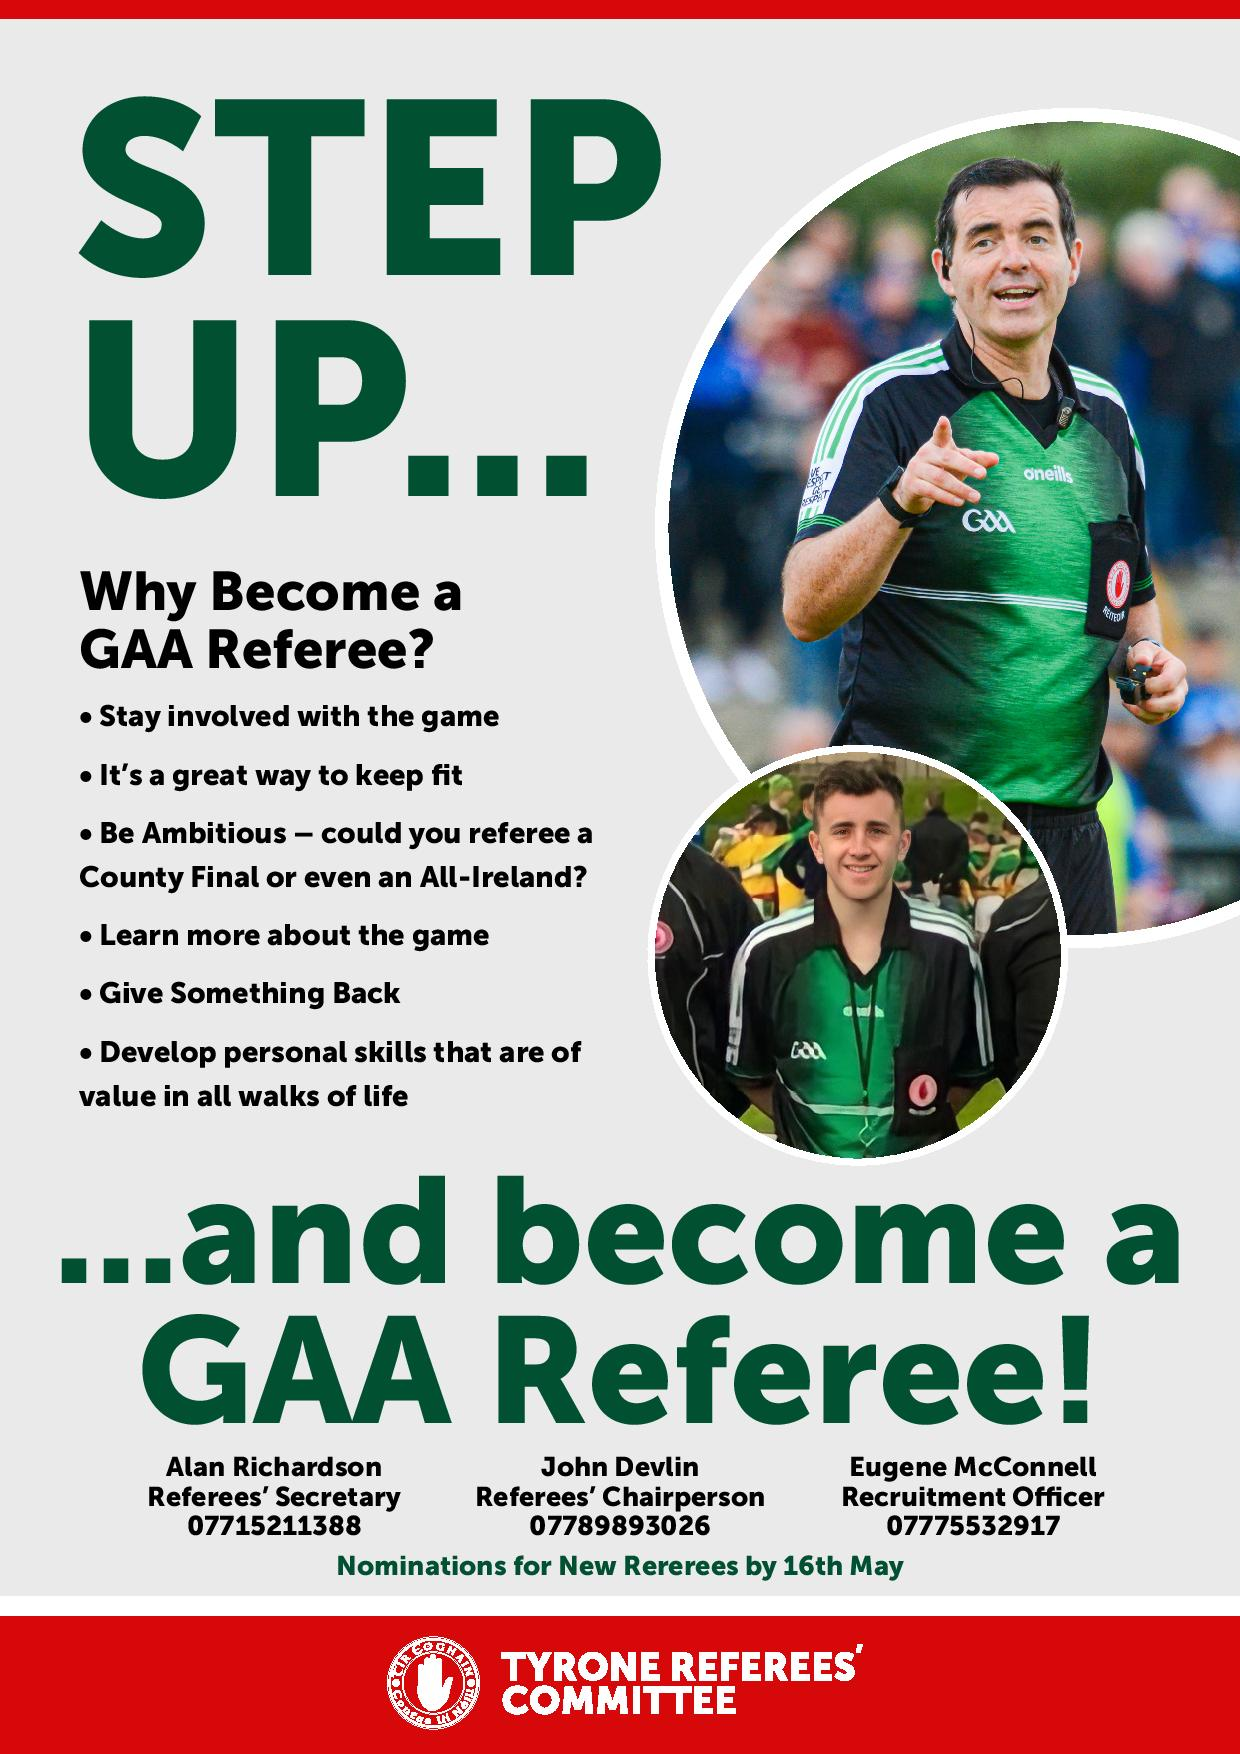 Call Goes out for More Referees, Clubs must play their part!